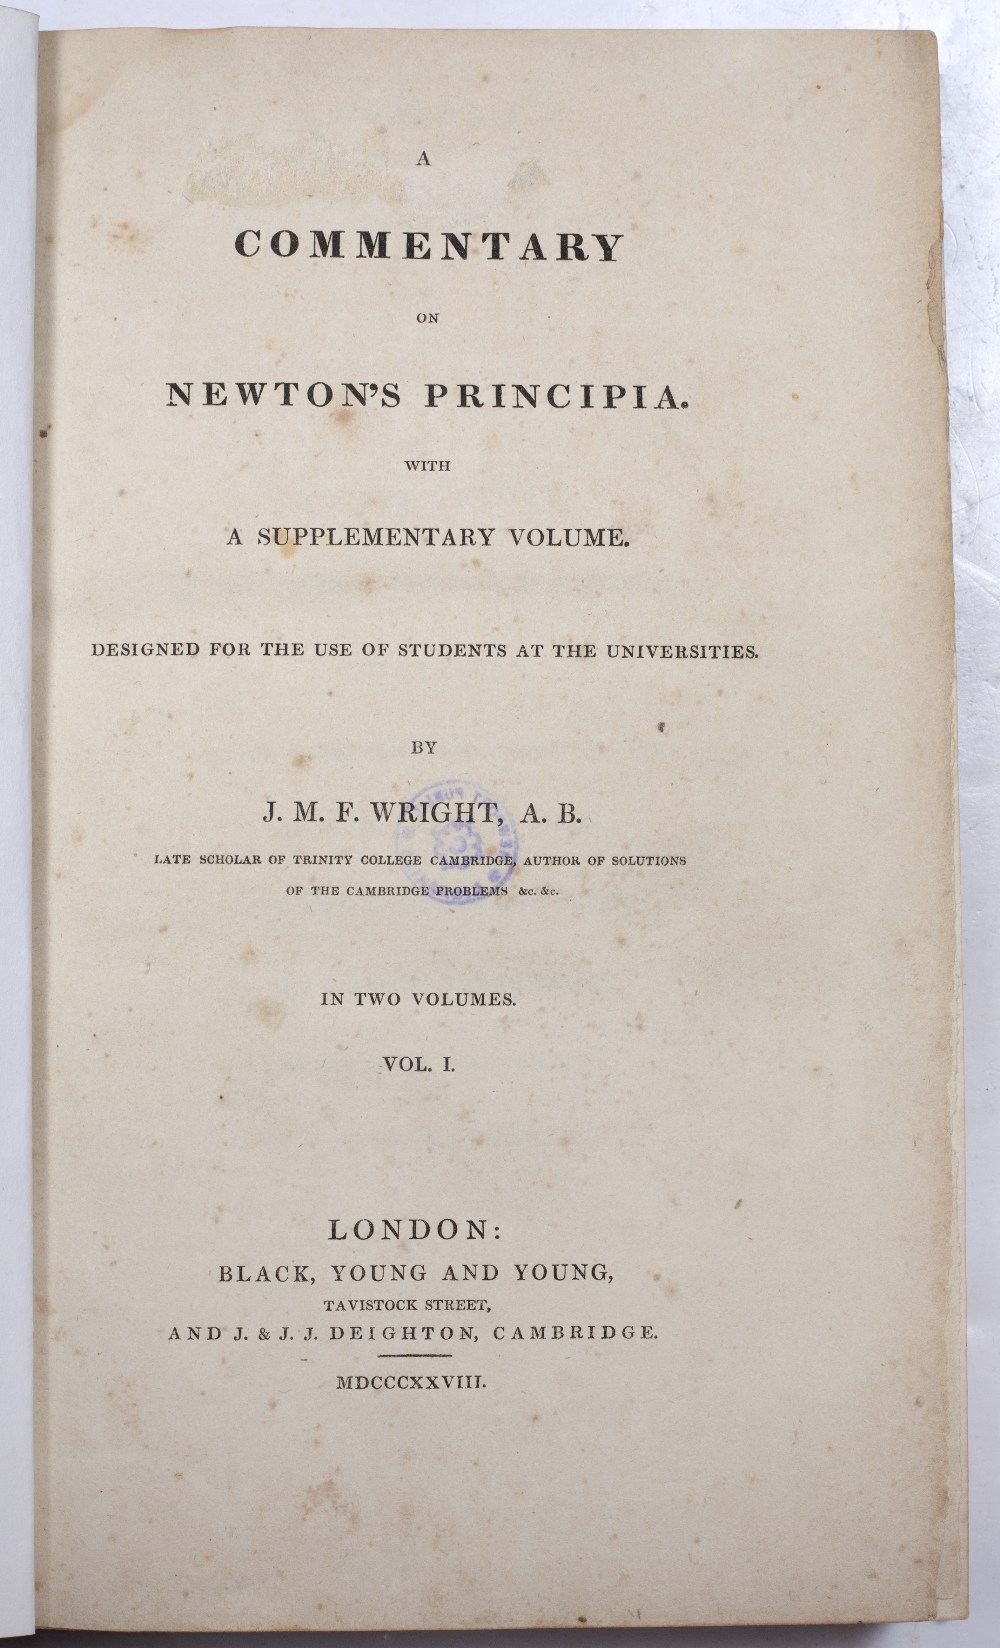 WRIGHT, John Martin Frederick, 'A Commentary on Newton's Principia with a supplementary volume'. - Image 2 of 3